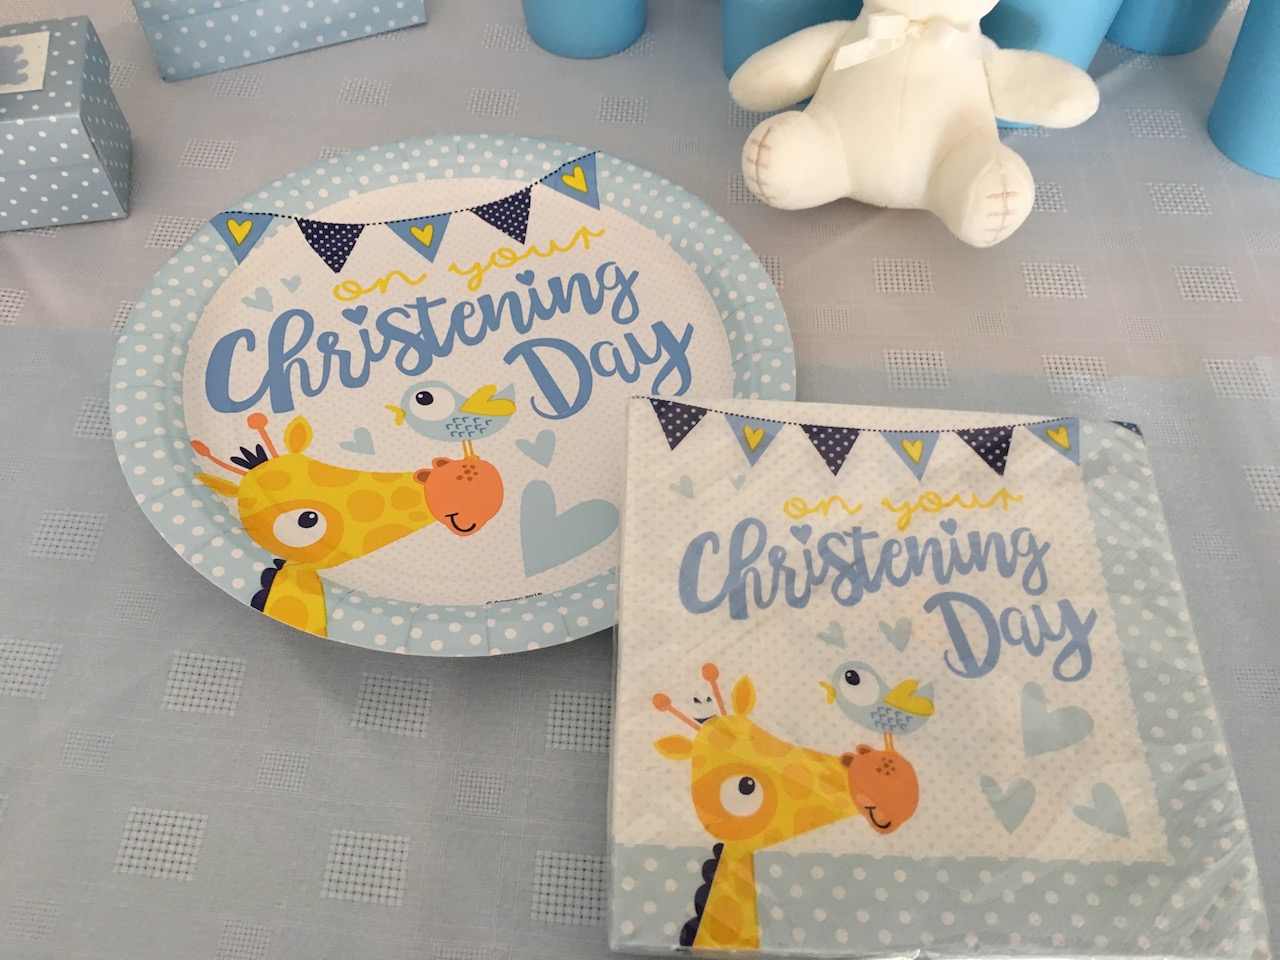 Christening Day plates and serviettes